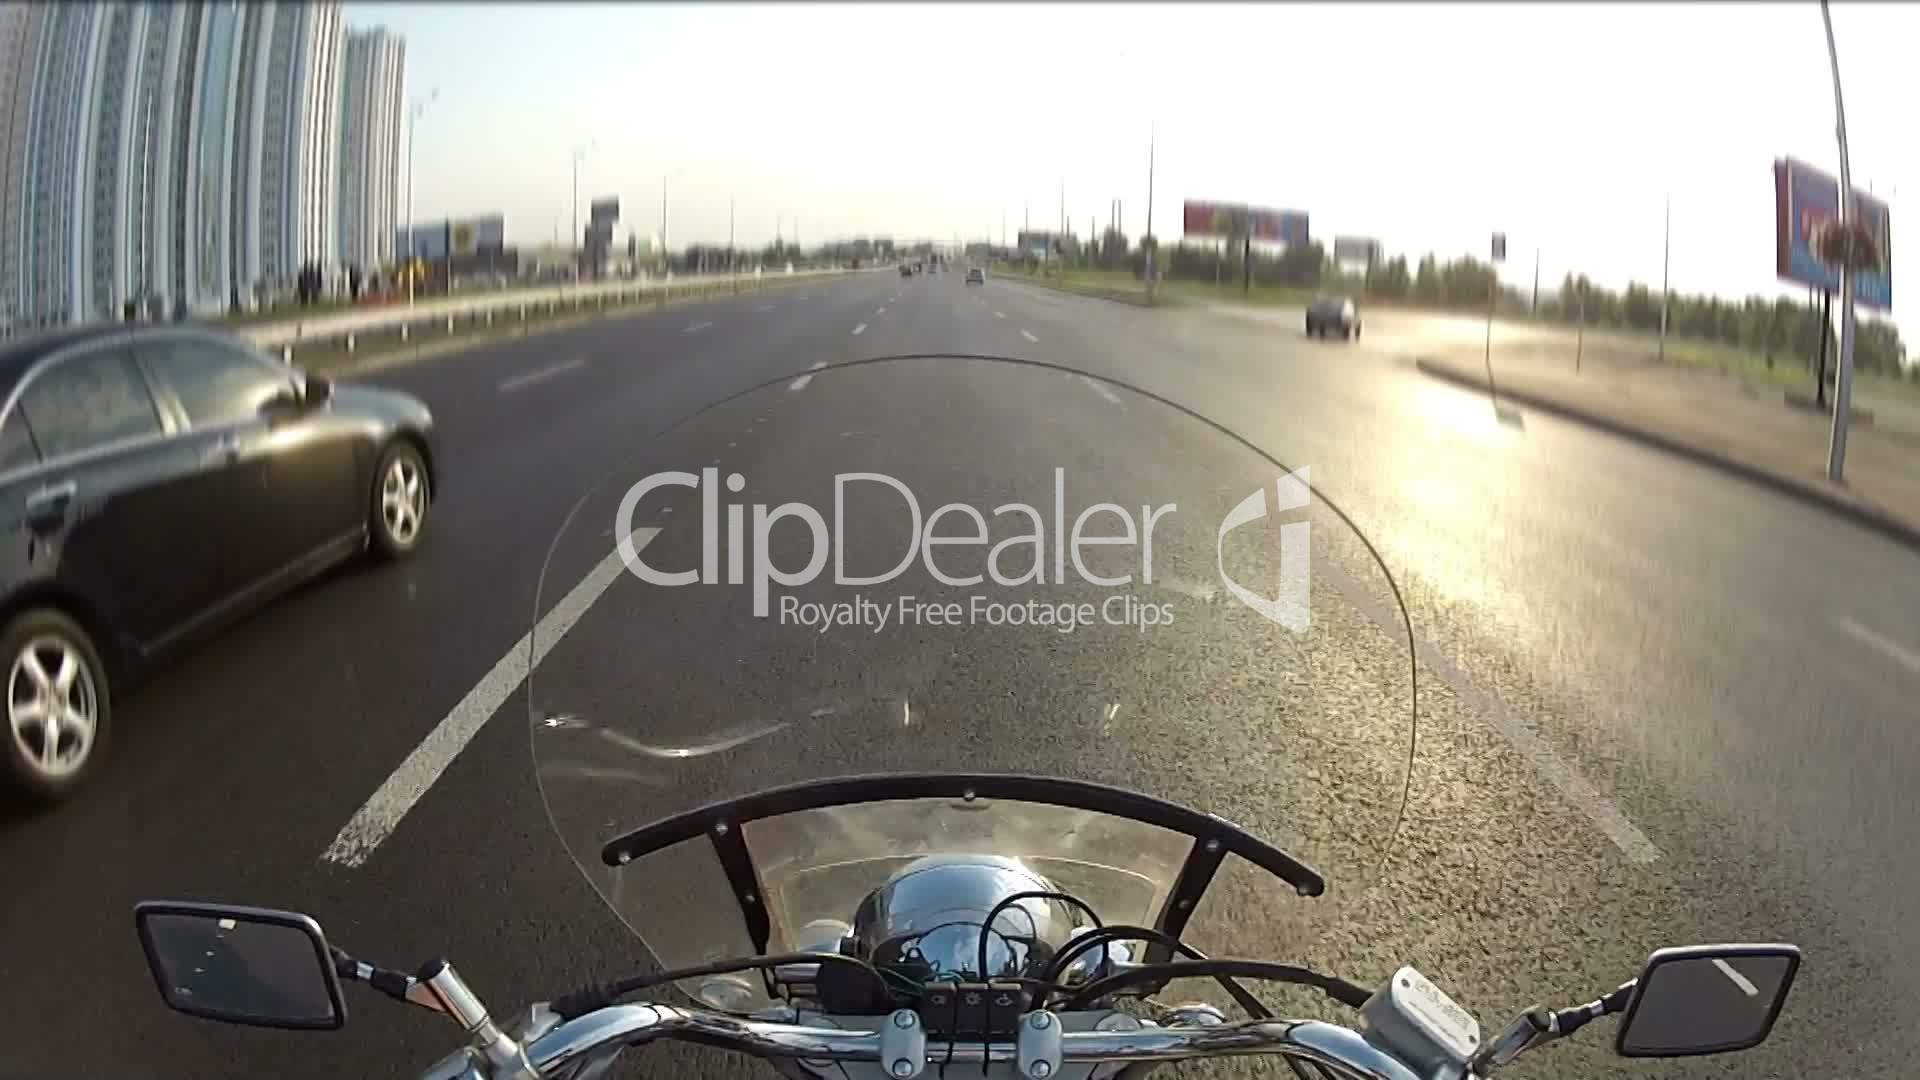 Biker driving the motorcycle on city highway, POV: Royalty